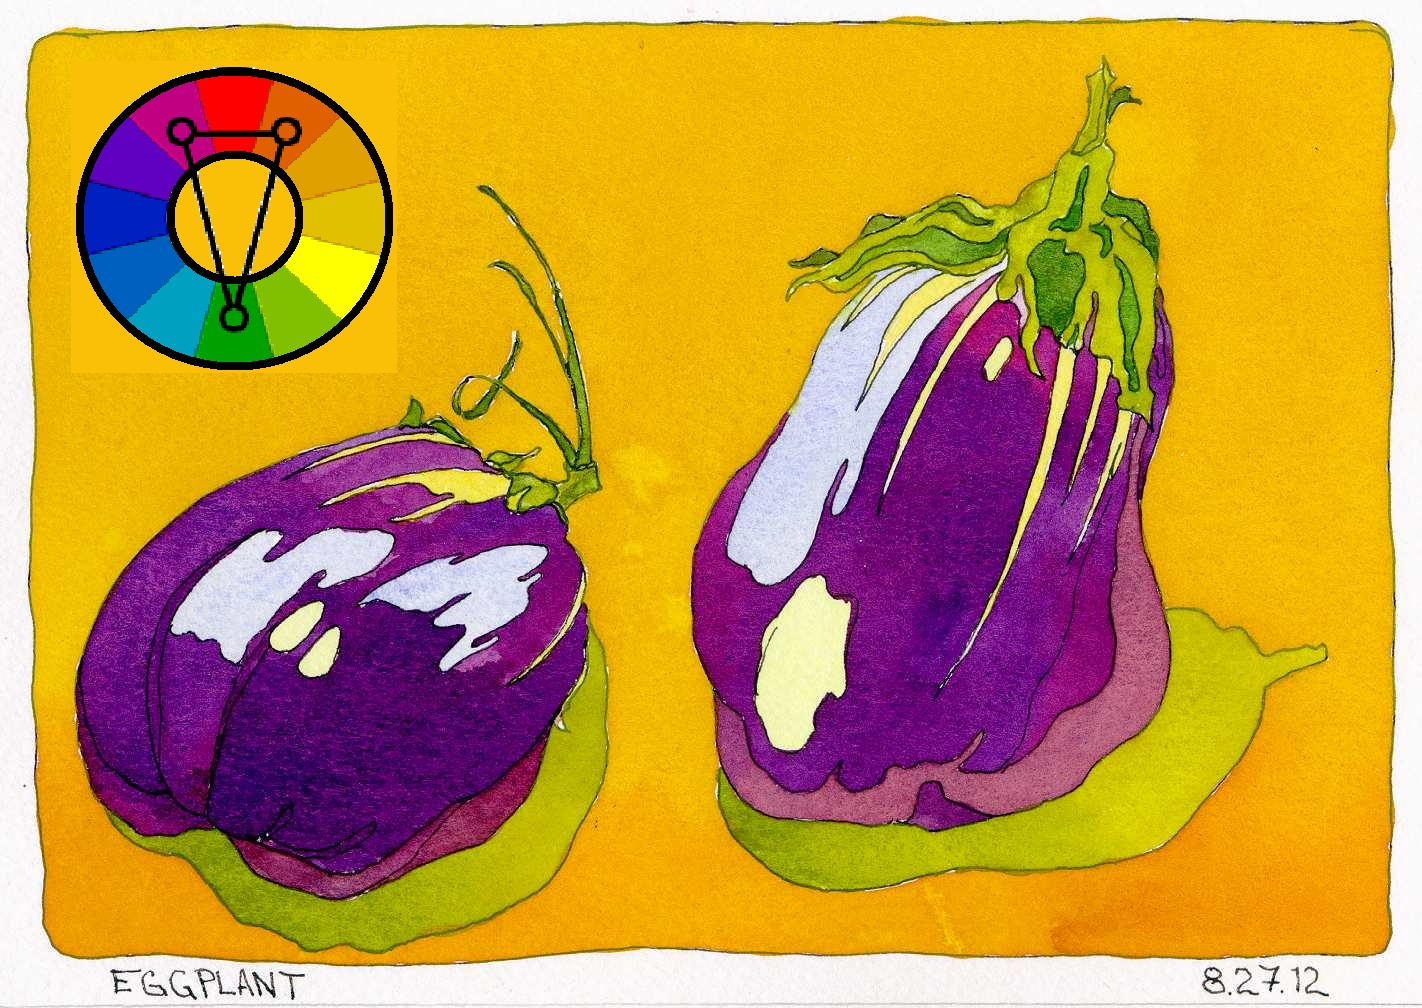 two-eggplants-ink-watercolor-color-scheme-game-chris-carter-artist-analogous-split-complements-082712-web.jpg